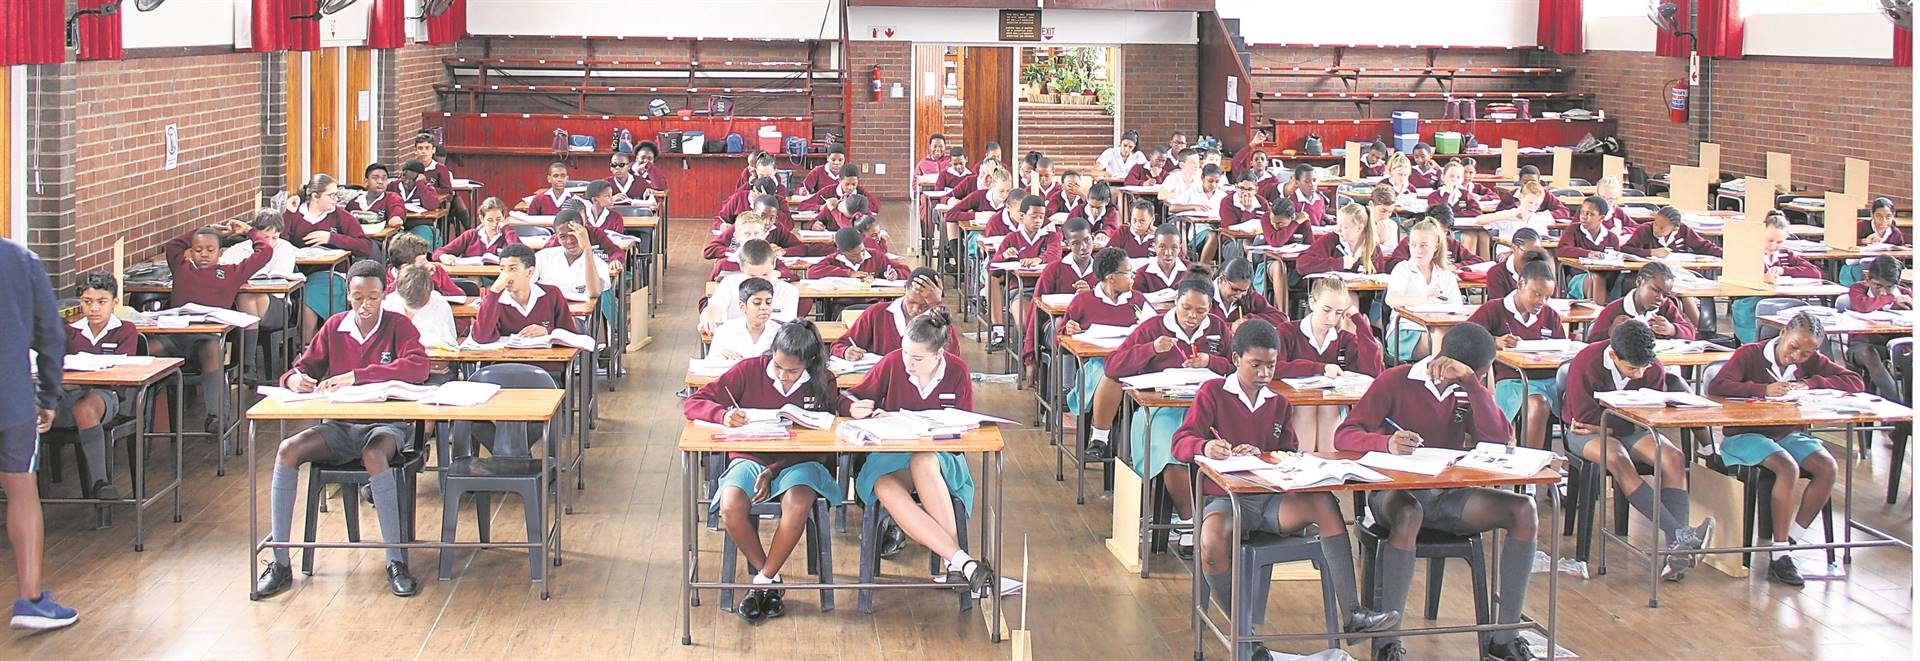 Pelham Senior Primary wishes all pupils every success as they sit to write their final exams for 2019. PHOTO: SUPPLIED